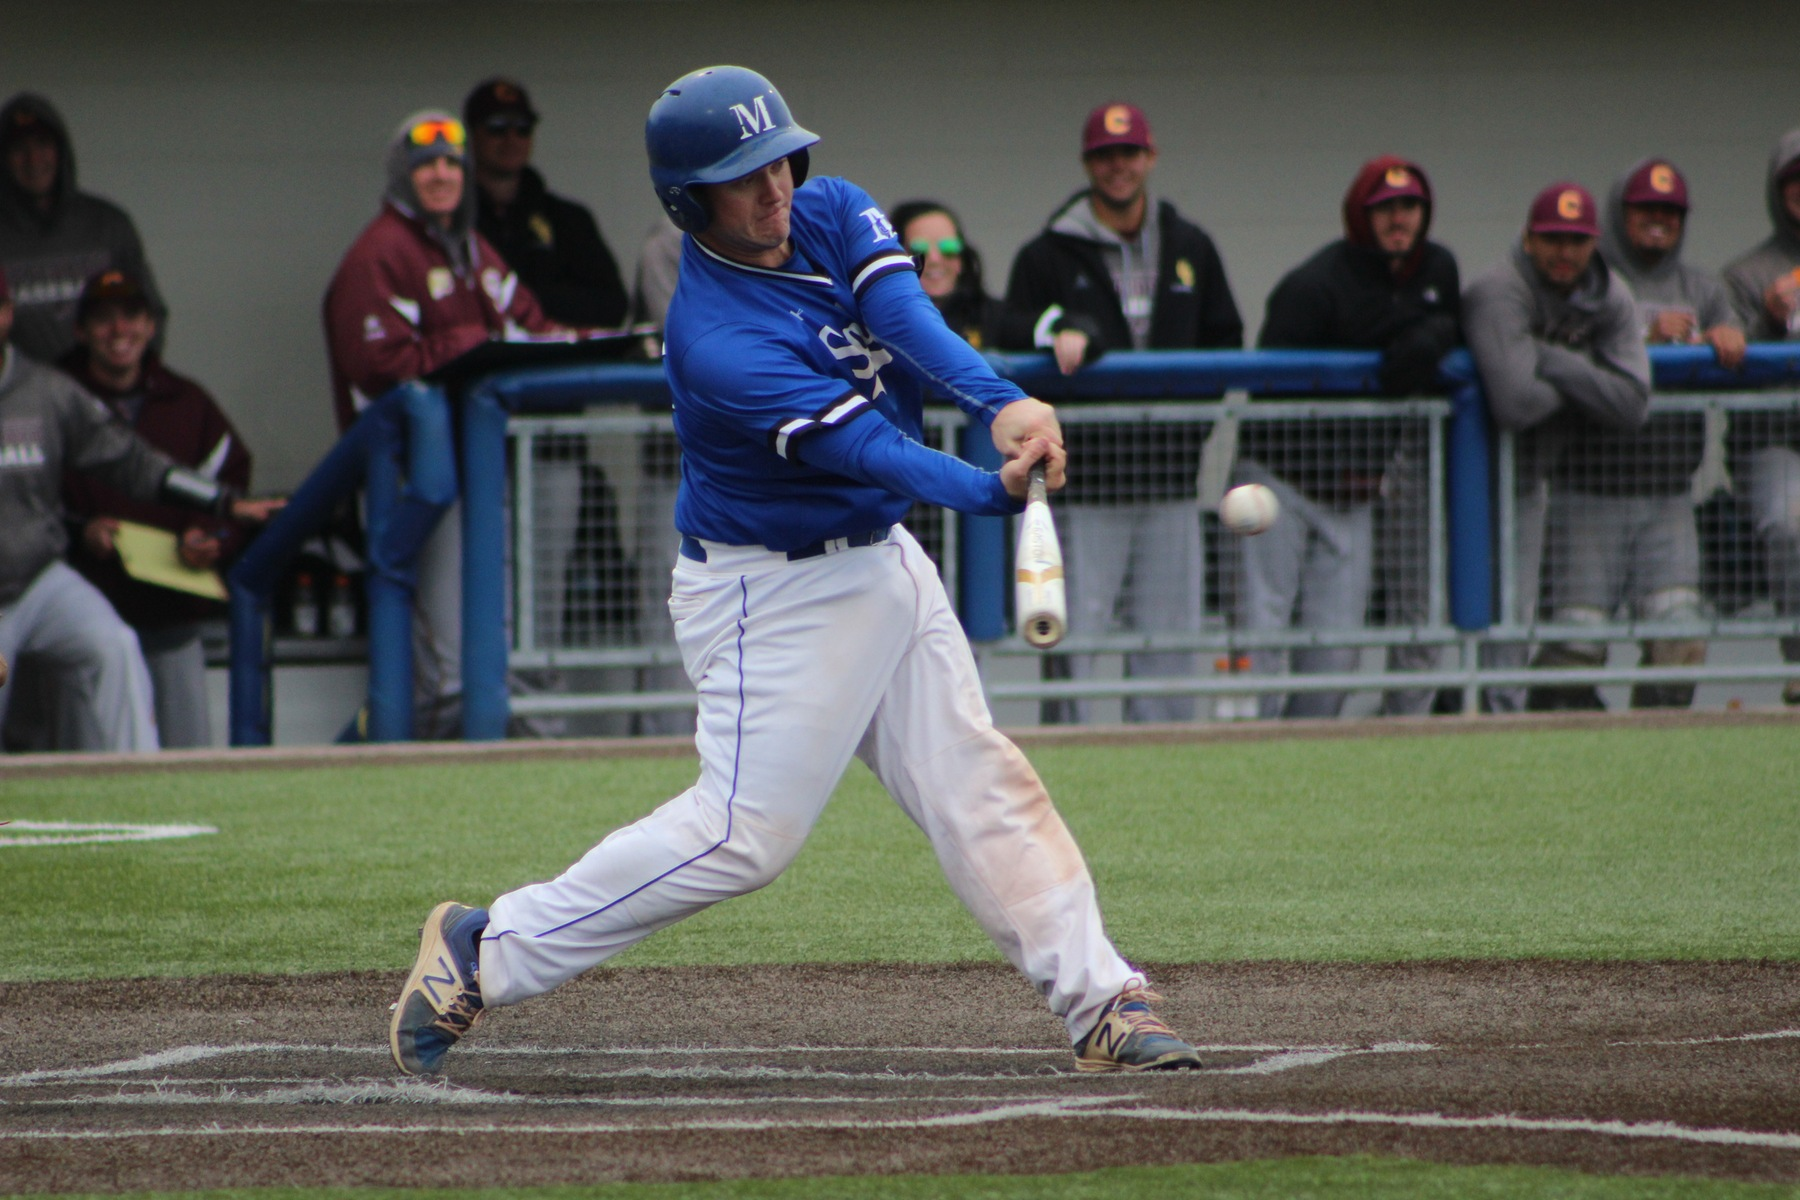 Michael Pappas drives a single to right field.